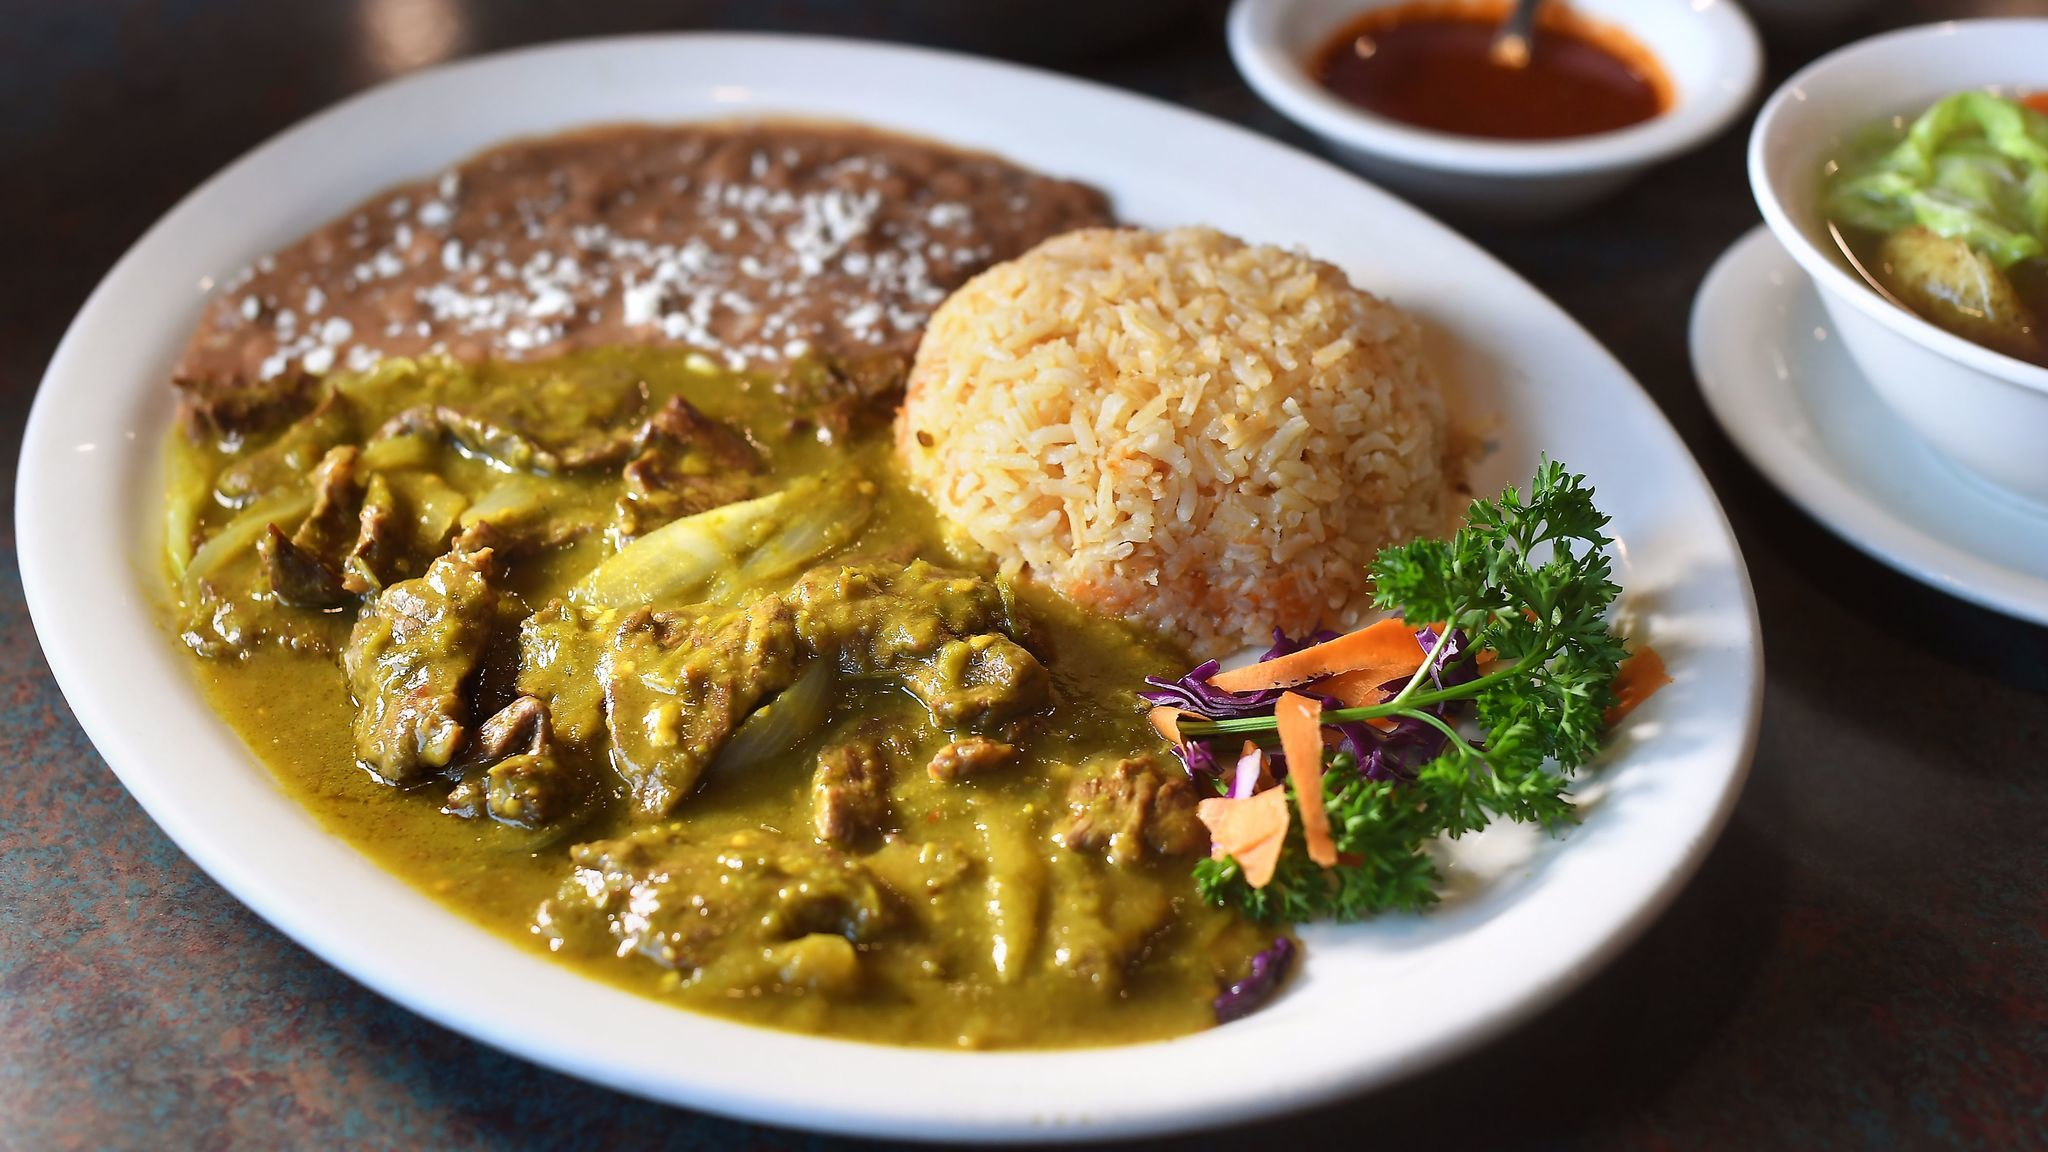 Carne de res en chile verde, diced flank steak in a green hot chile sauce, is served with rice and beans at Teresitas Restaurant in Los Angeles.